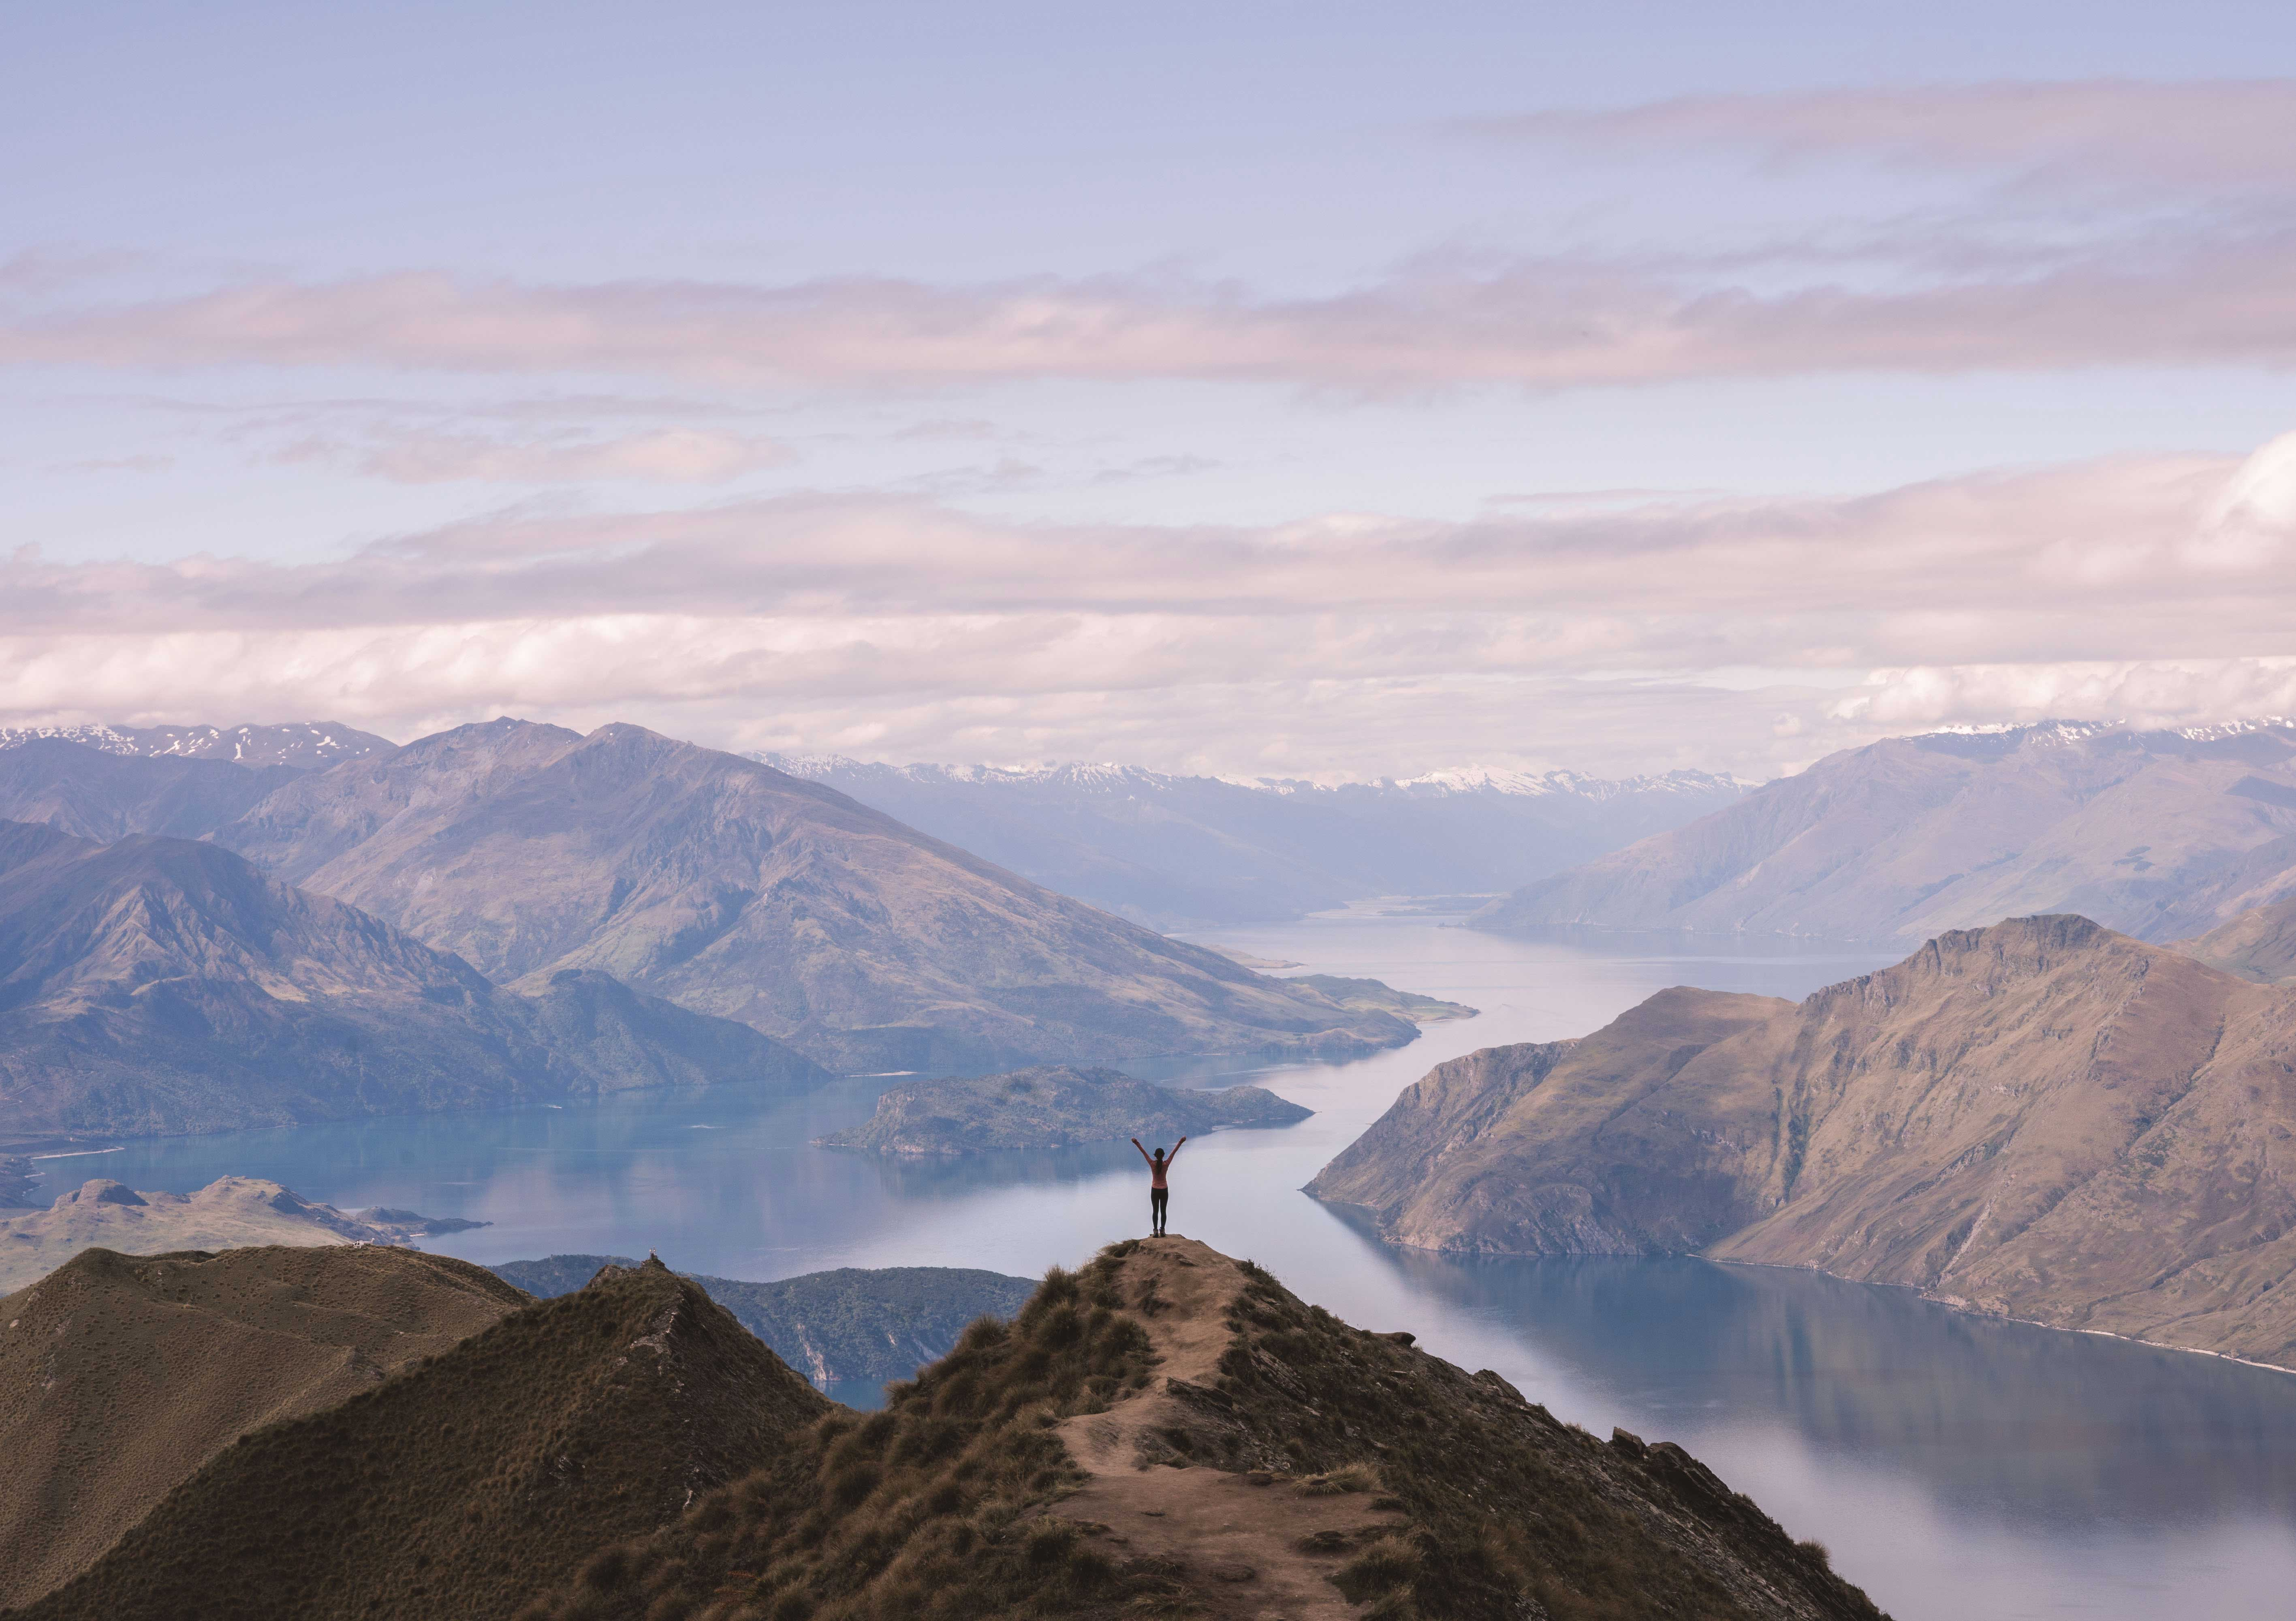 Roy's Peak Hike: The Most Instagrammable Spot in New Zealand